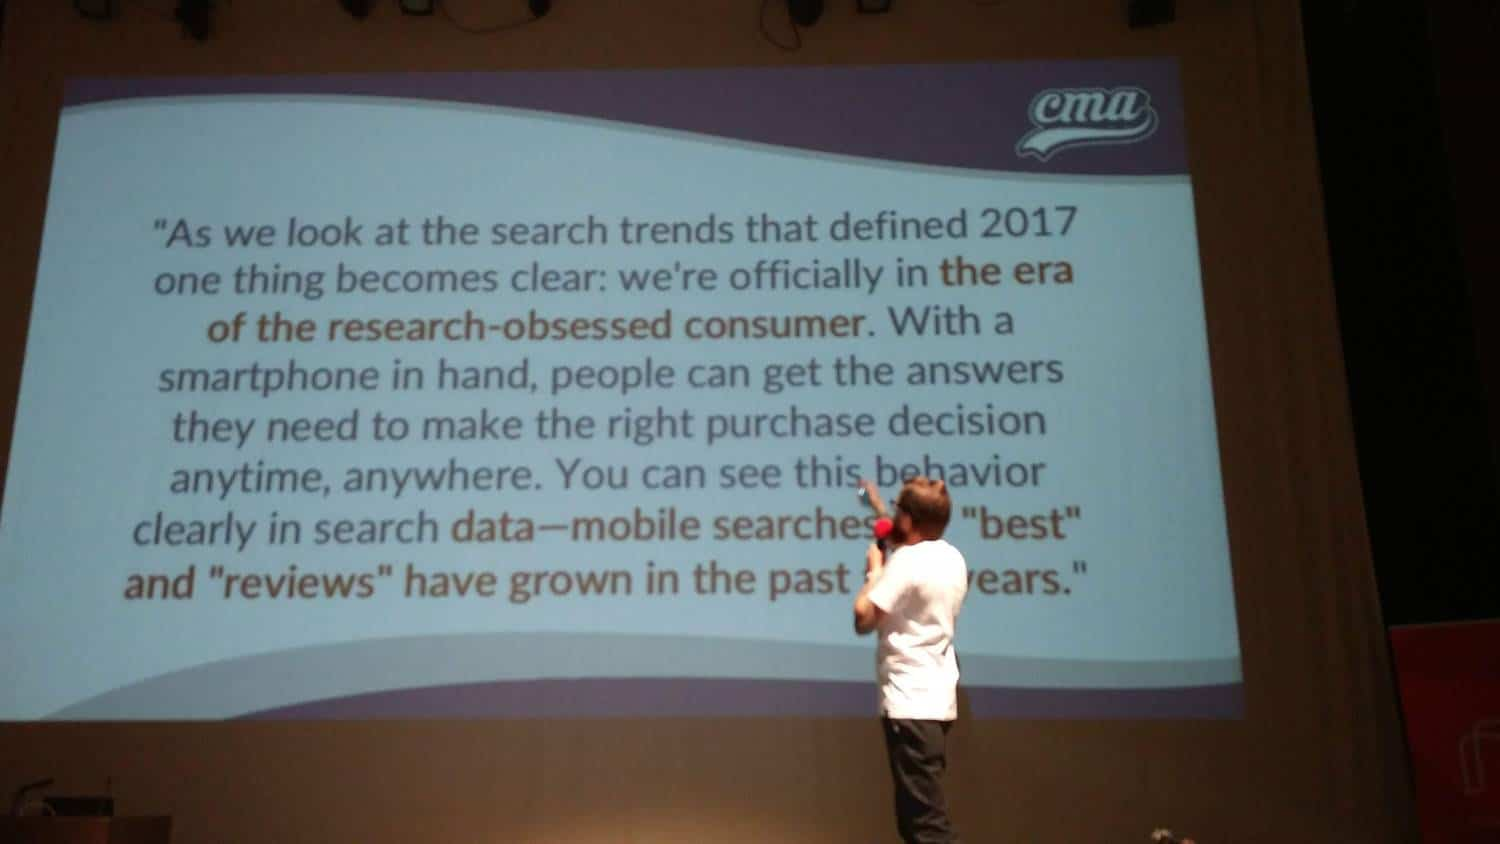 Chris Marr talks about the research-obsessed consumer